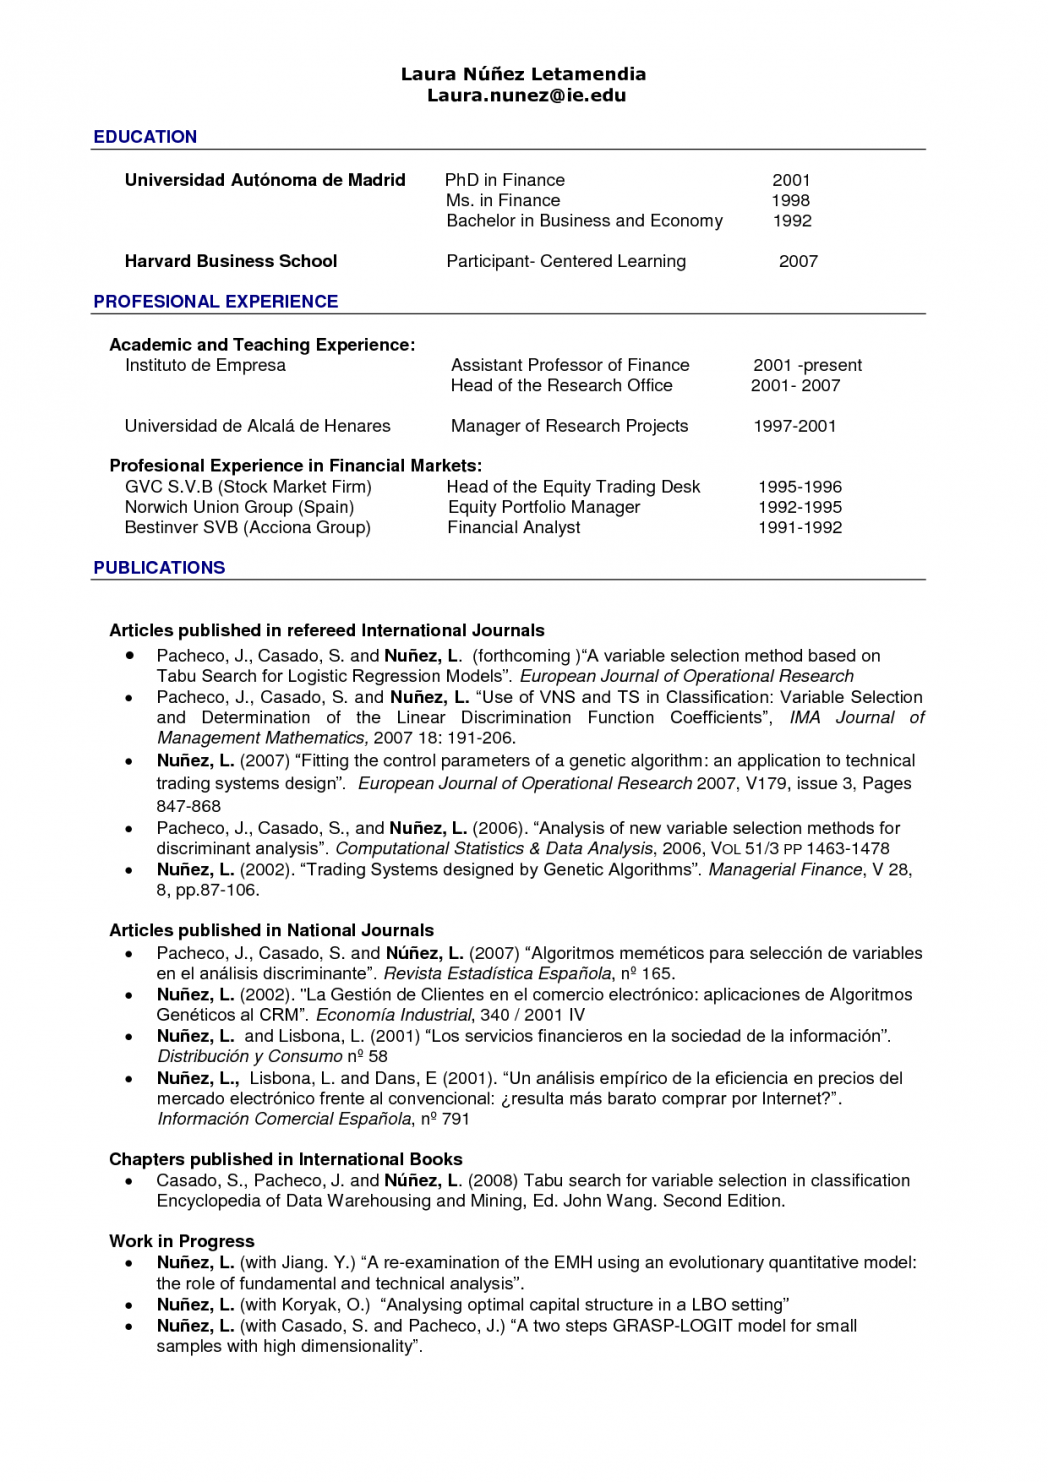 014 Cosy Harvard Mba Resume Format For Hbs Essays Business School Essay Length Made Applic Questions Word Count Analysis Tips Books Limit 1048x1482 Awful Full